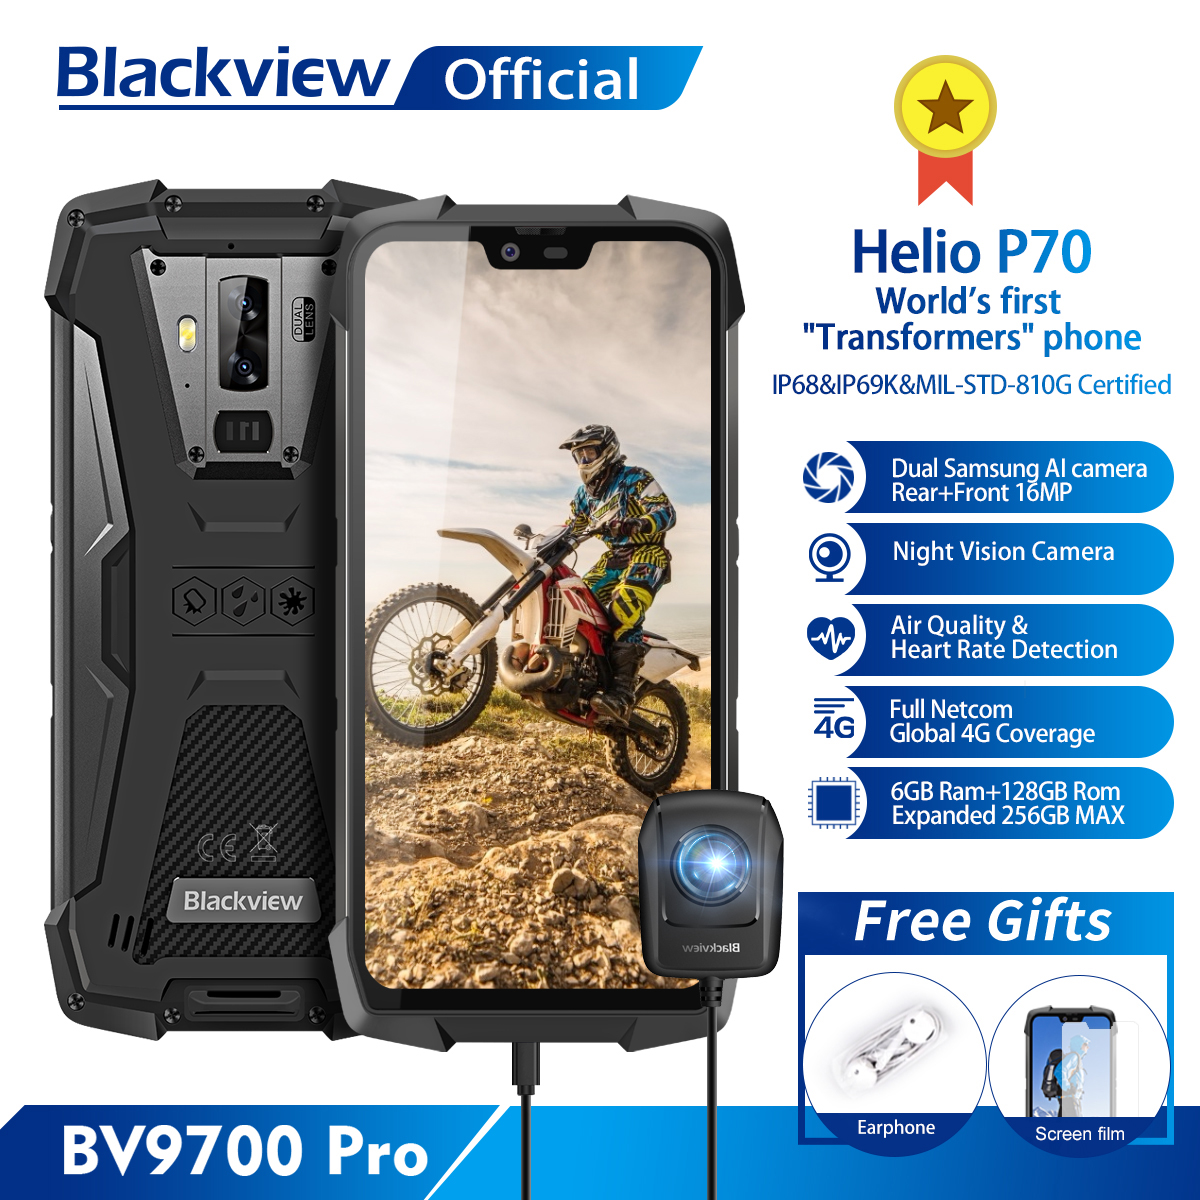 US $399 99 |Blackview BV9700 Pro IP68 Rugged Mobile Phone Helio P70 Octa  Core 6GB+128GB Android 9 0 16MP+8MP Night Vision Camera Smartphone-in